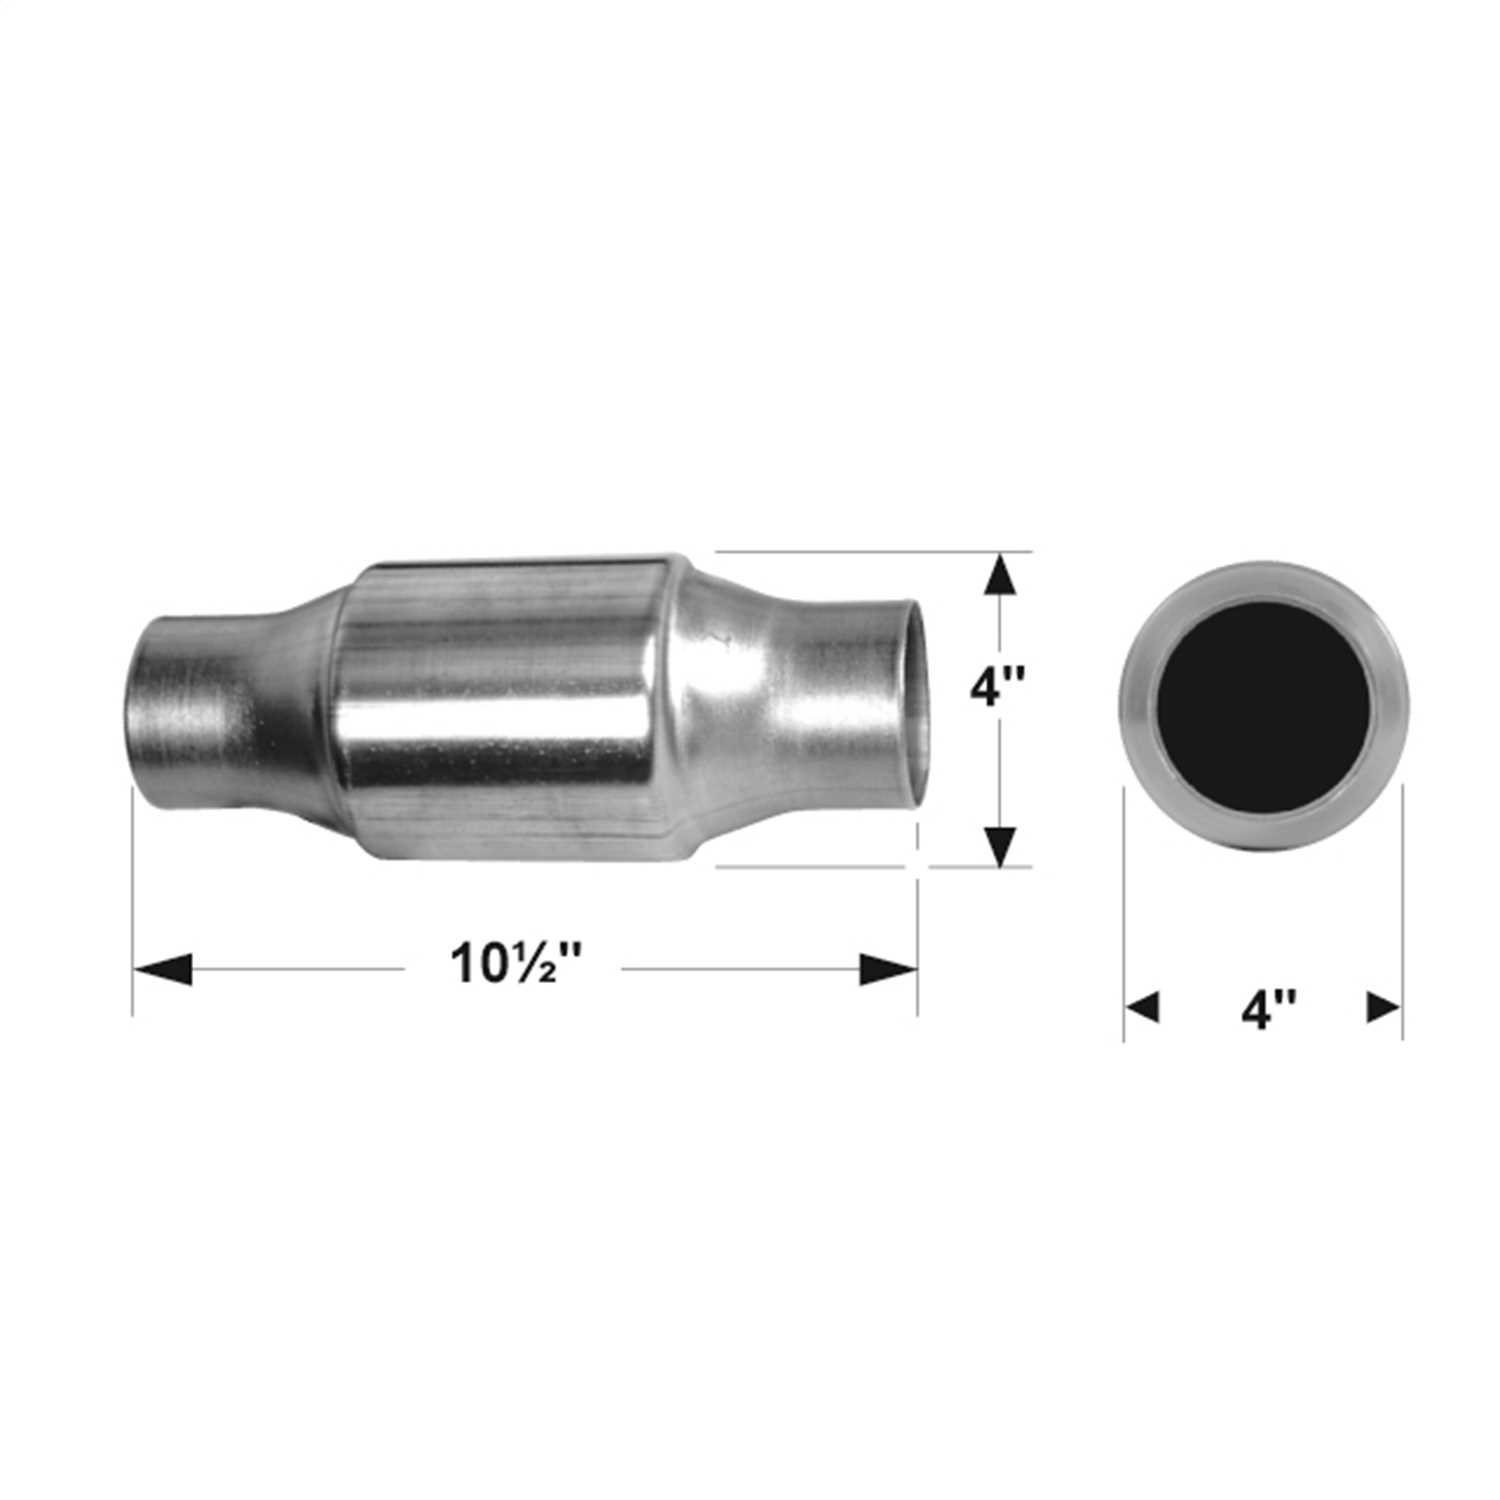 2230125 Flowmaster 49 State Catalytic Converters Universal Catalytic Converter